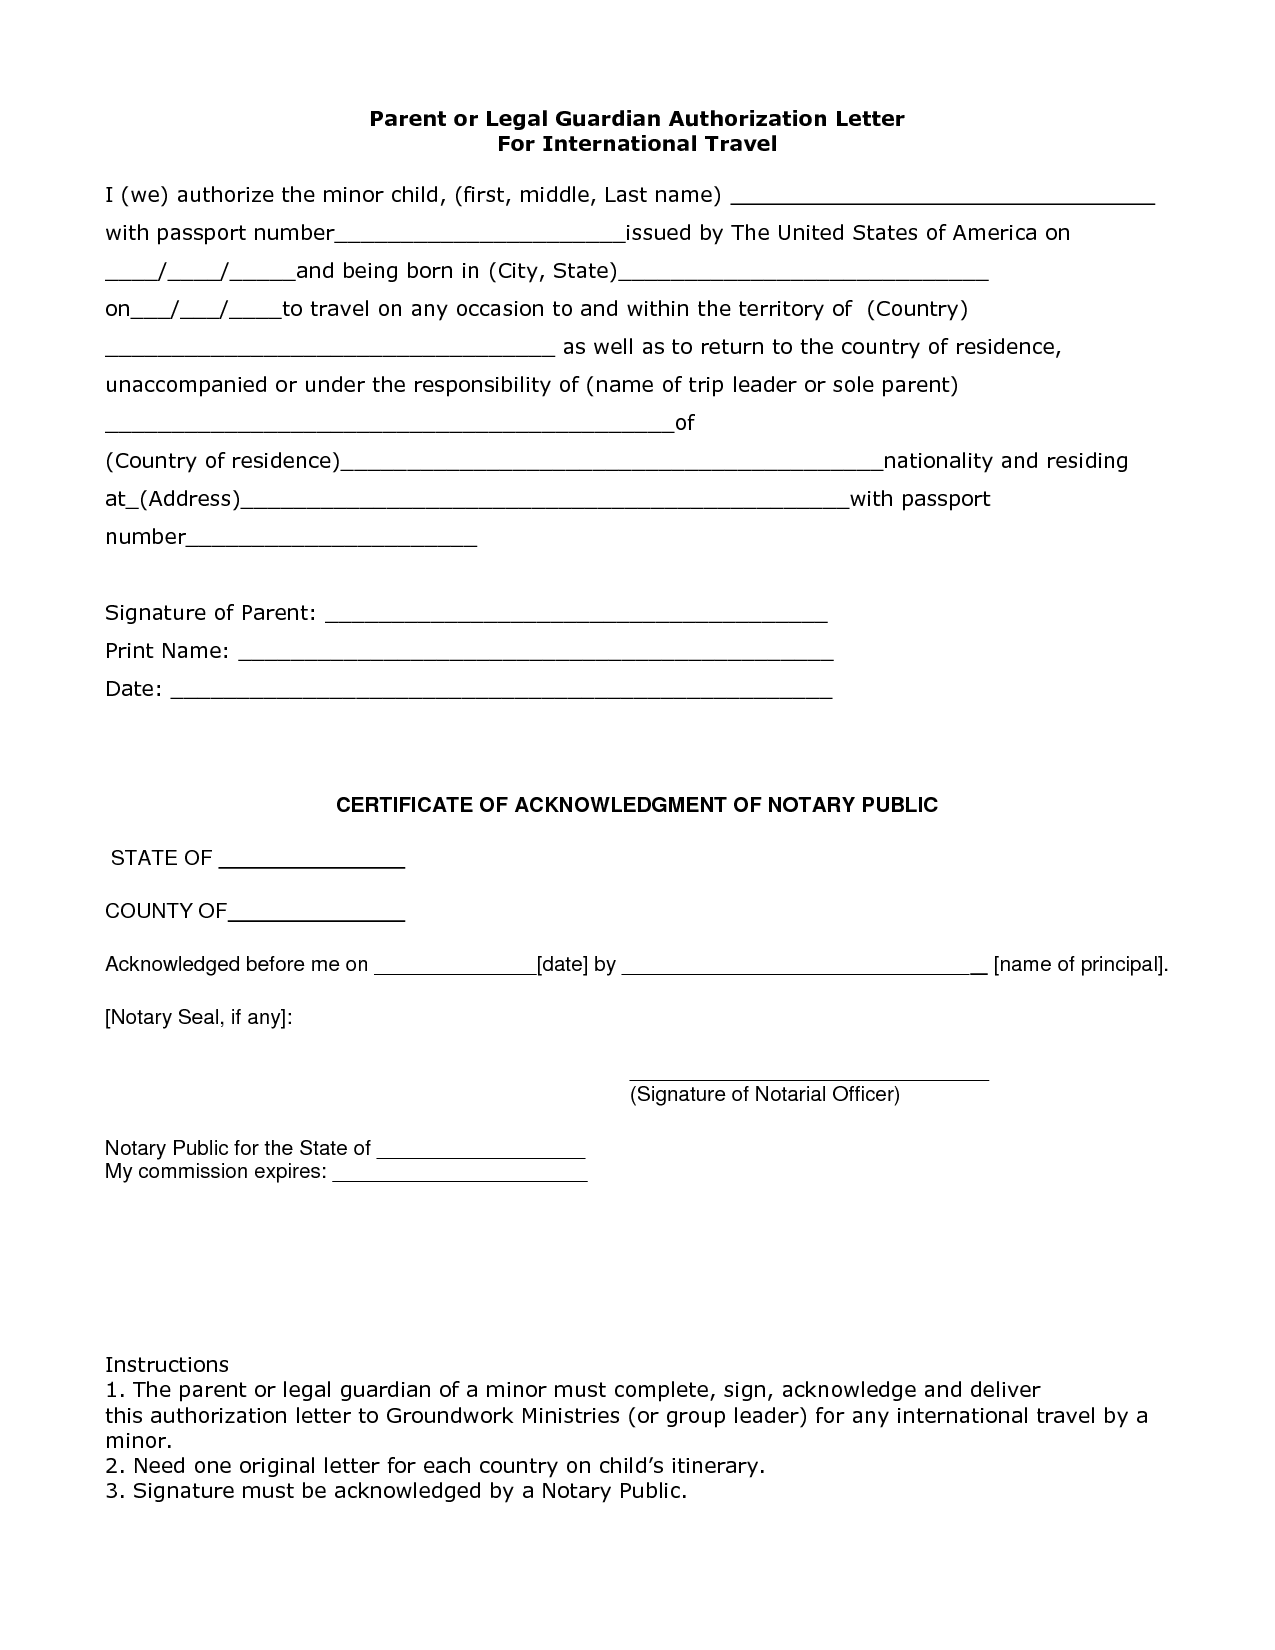 Affidavit Of Facts Template Stunning Letter Example Legal Guardianship Sample And Forms  Personal .